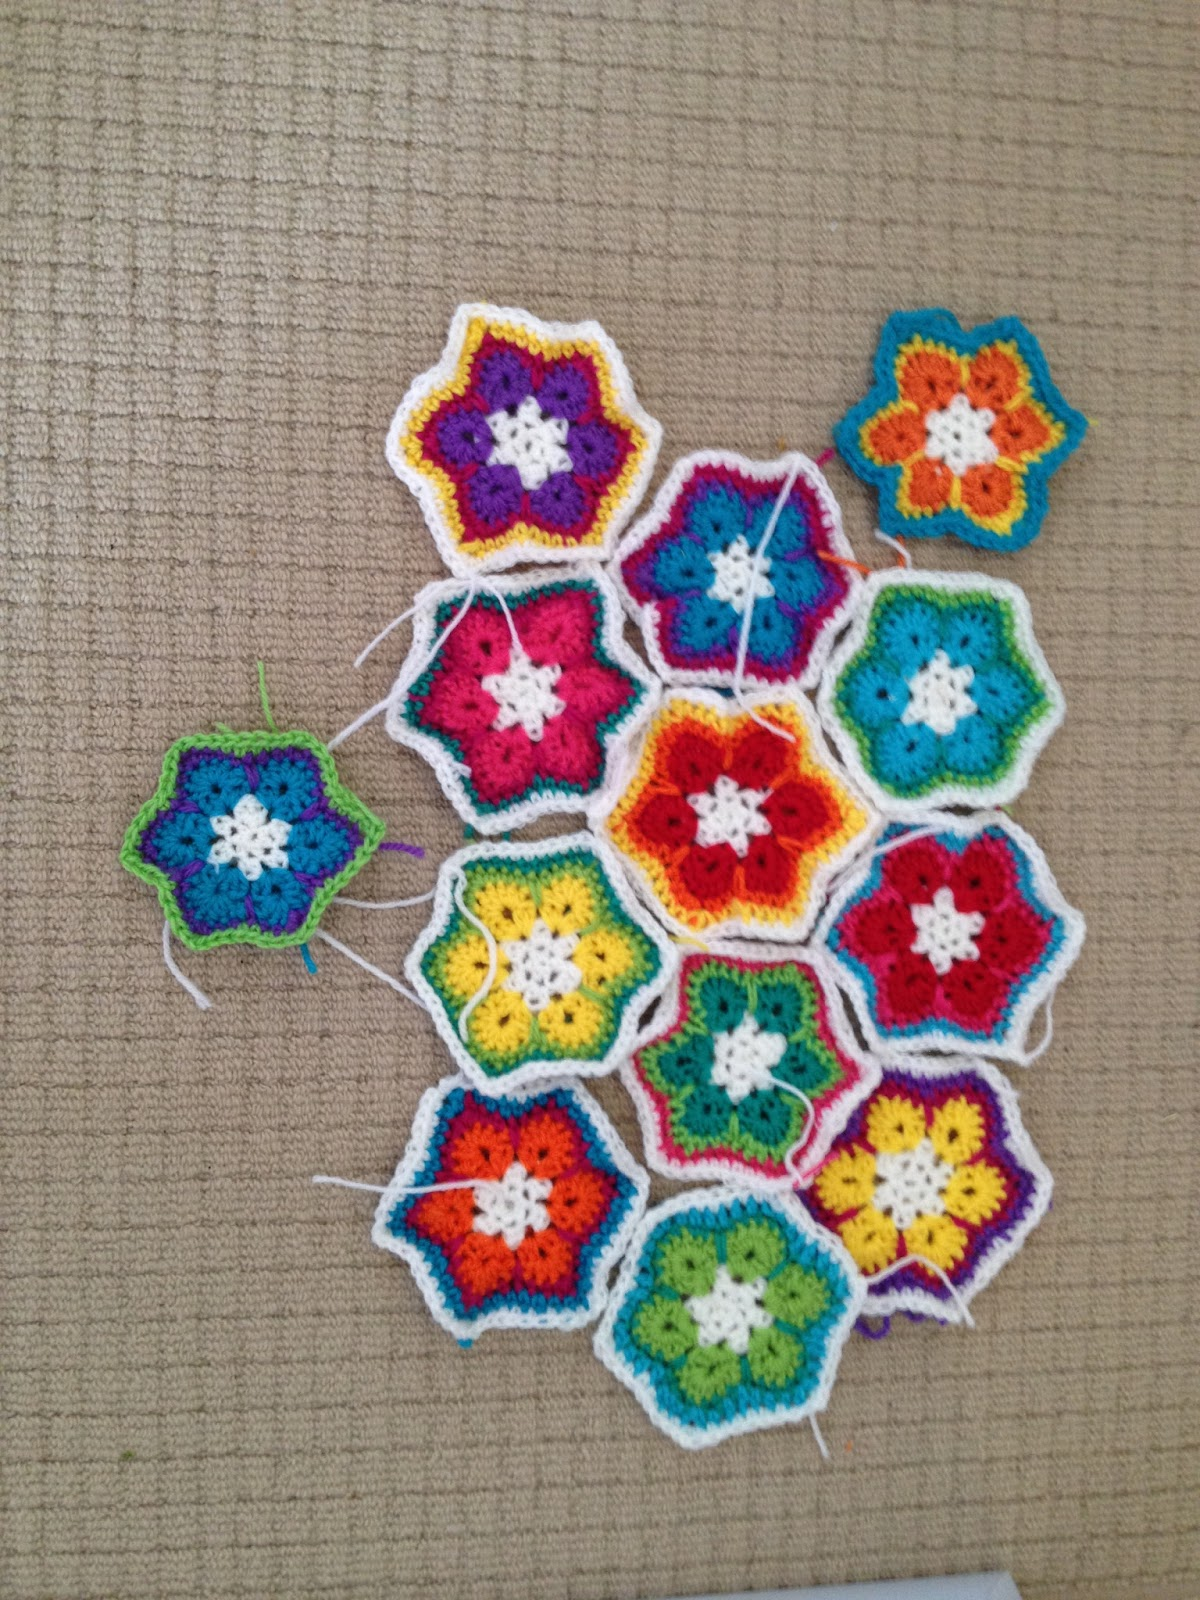 Free Crochet Hexagon Hippo Pattern : Rhonies Rainbow: African Flower Hexagon Crochet Pattern